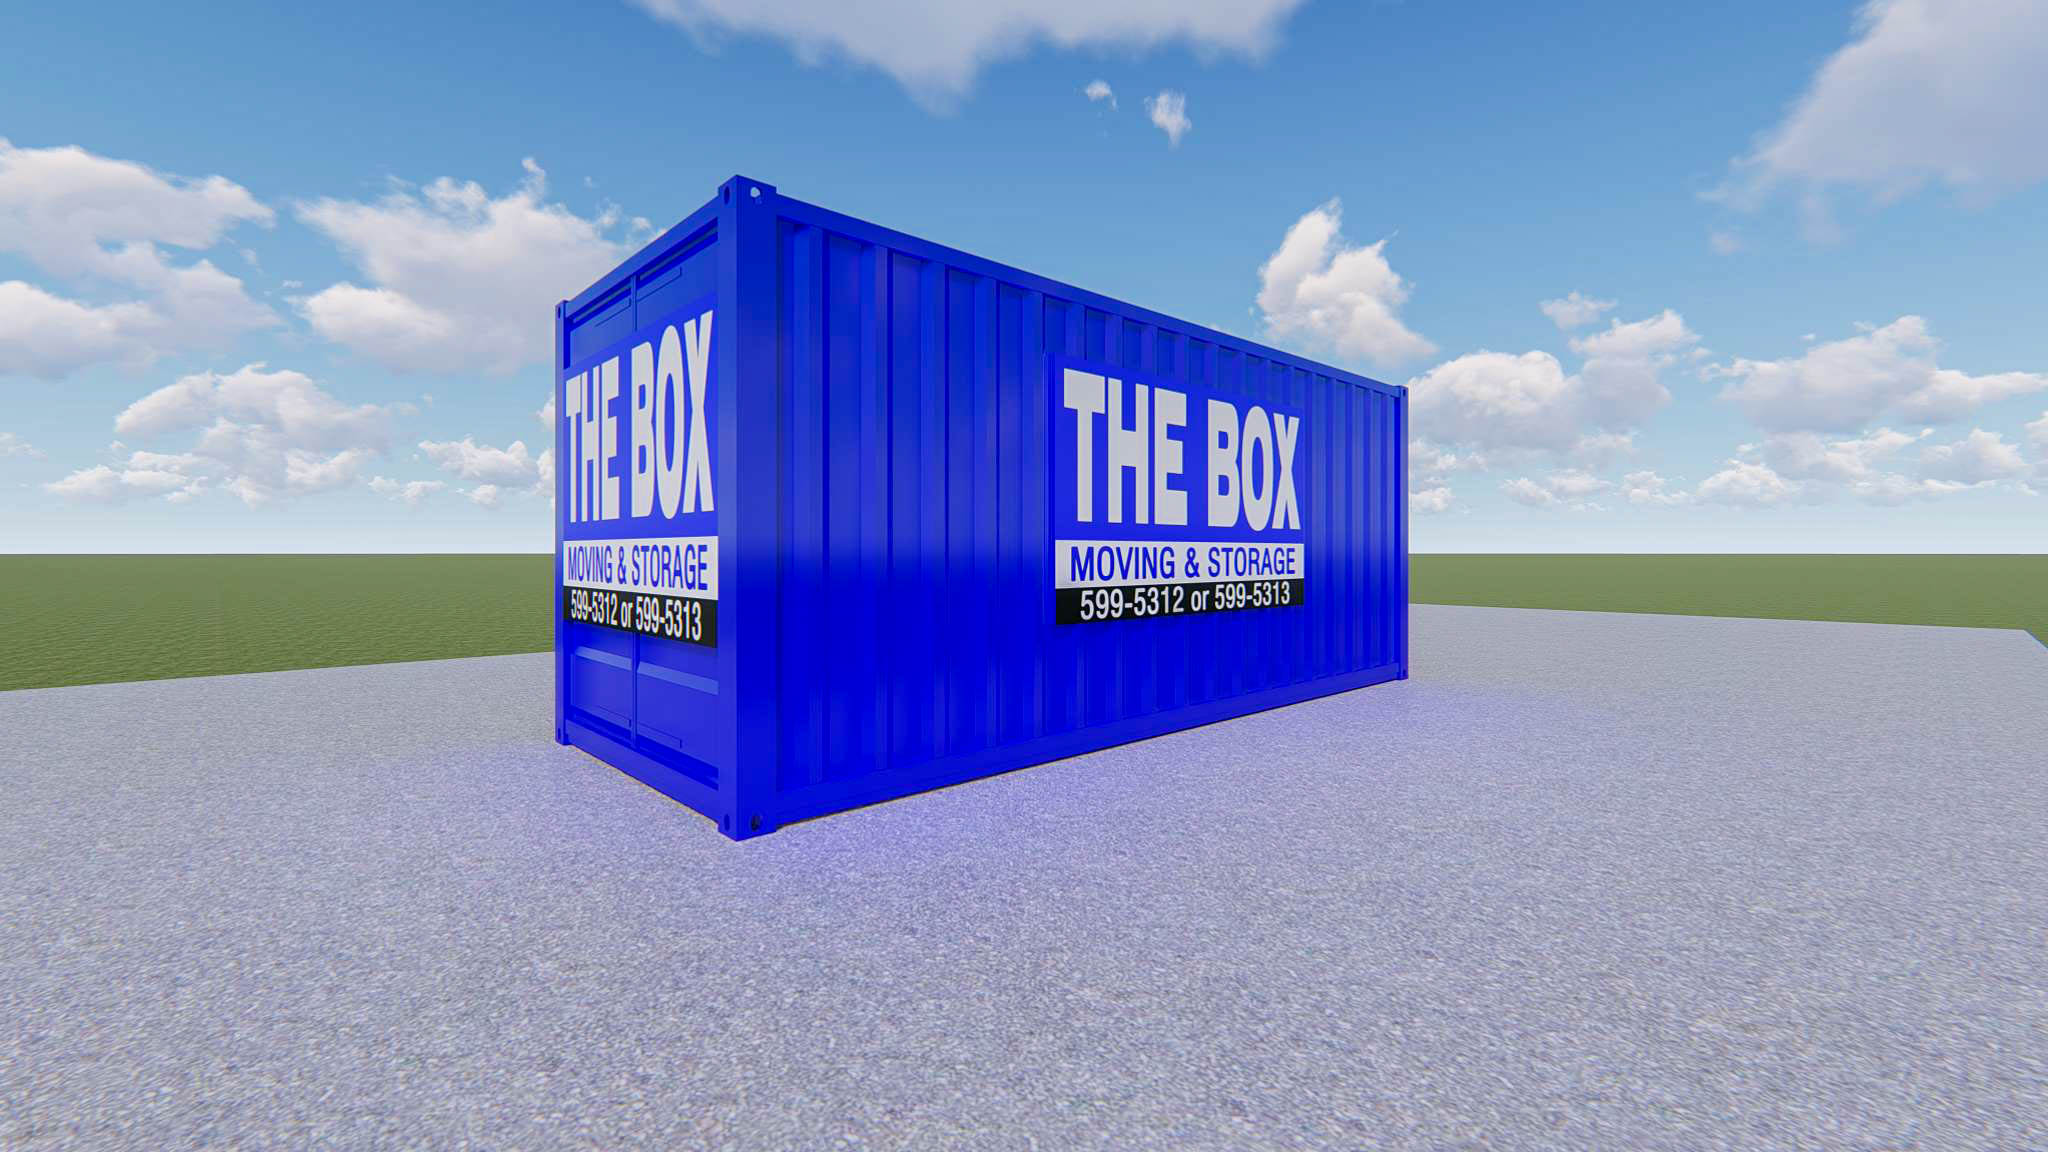 The Box - Moving & Storage